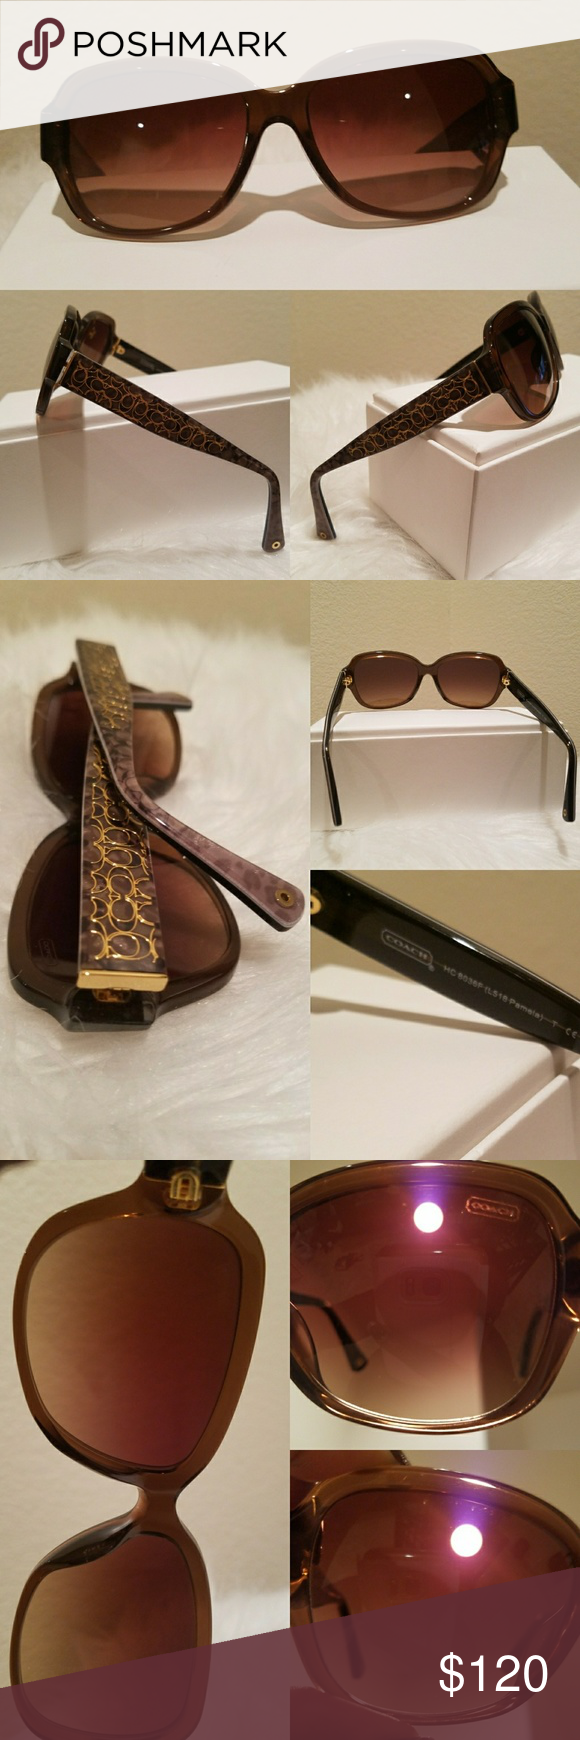 fa801daa01bf4 Gently Preowned Coach Pamela Sunglasses   Just reduced.FIRM PRICE. No  offers